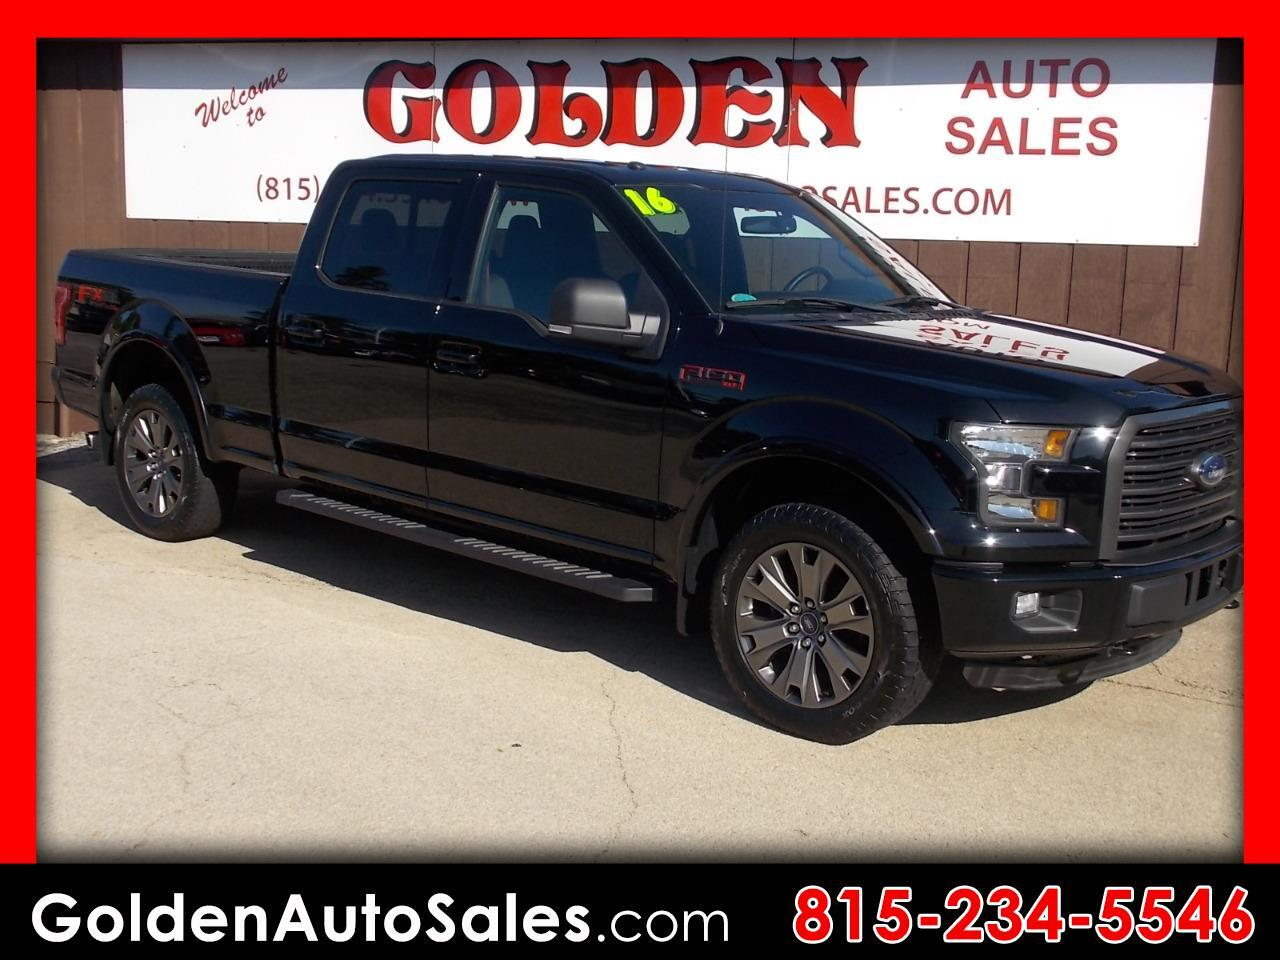 2016 Ford F-150 4WD Supercrew XLT FX4